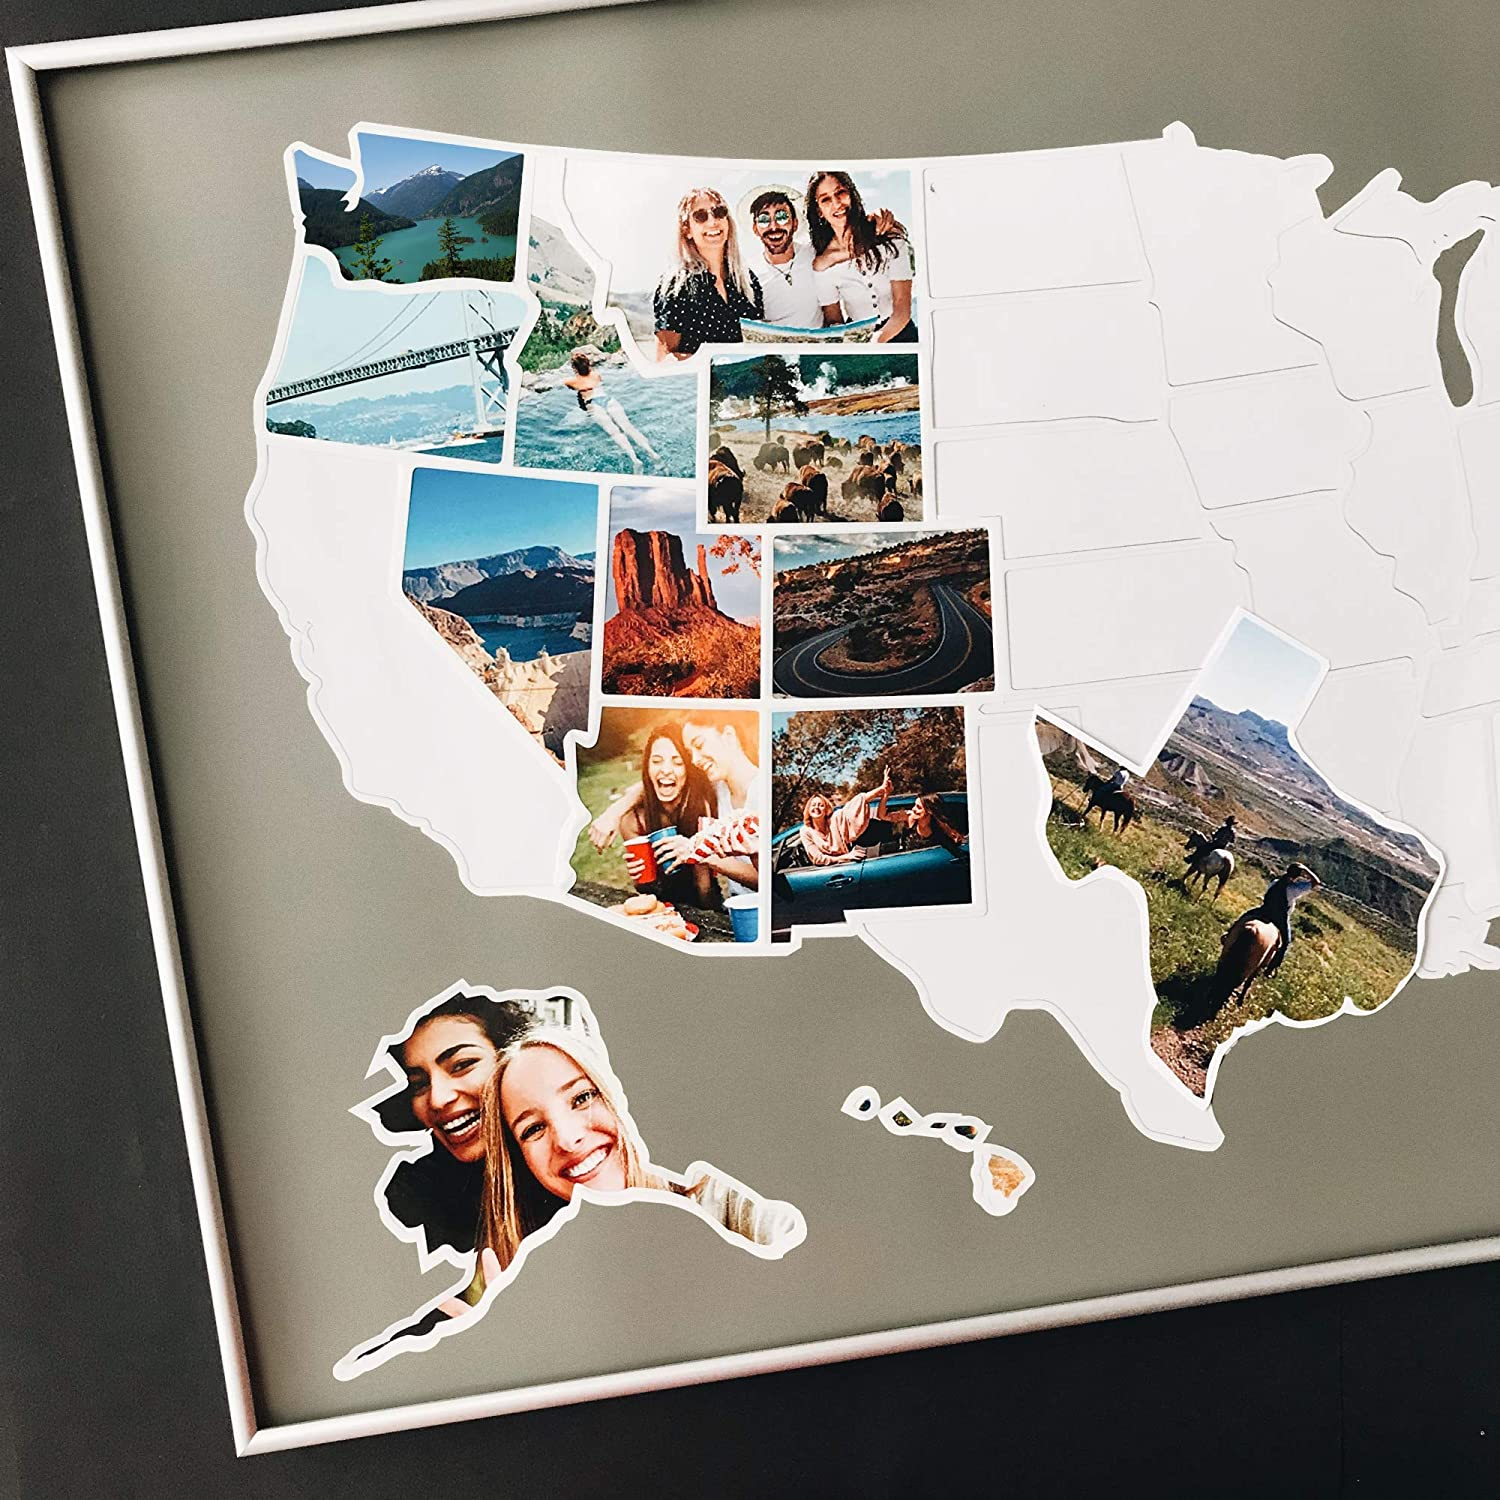 Us Map Picture Frame Amazon.com: USA Photo Map   50 States Travel Map   Fits 24 x 36 in